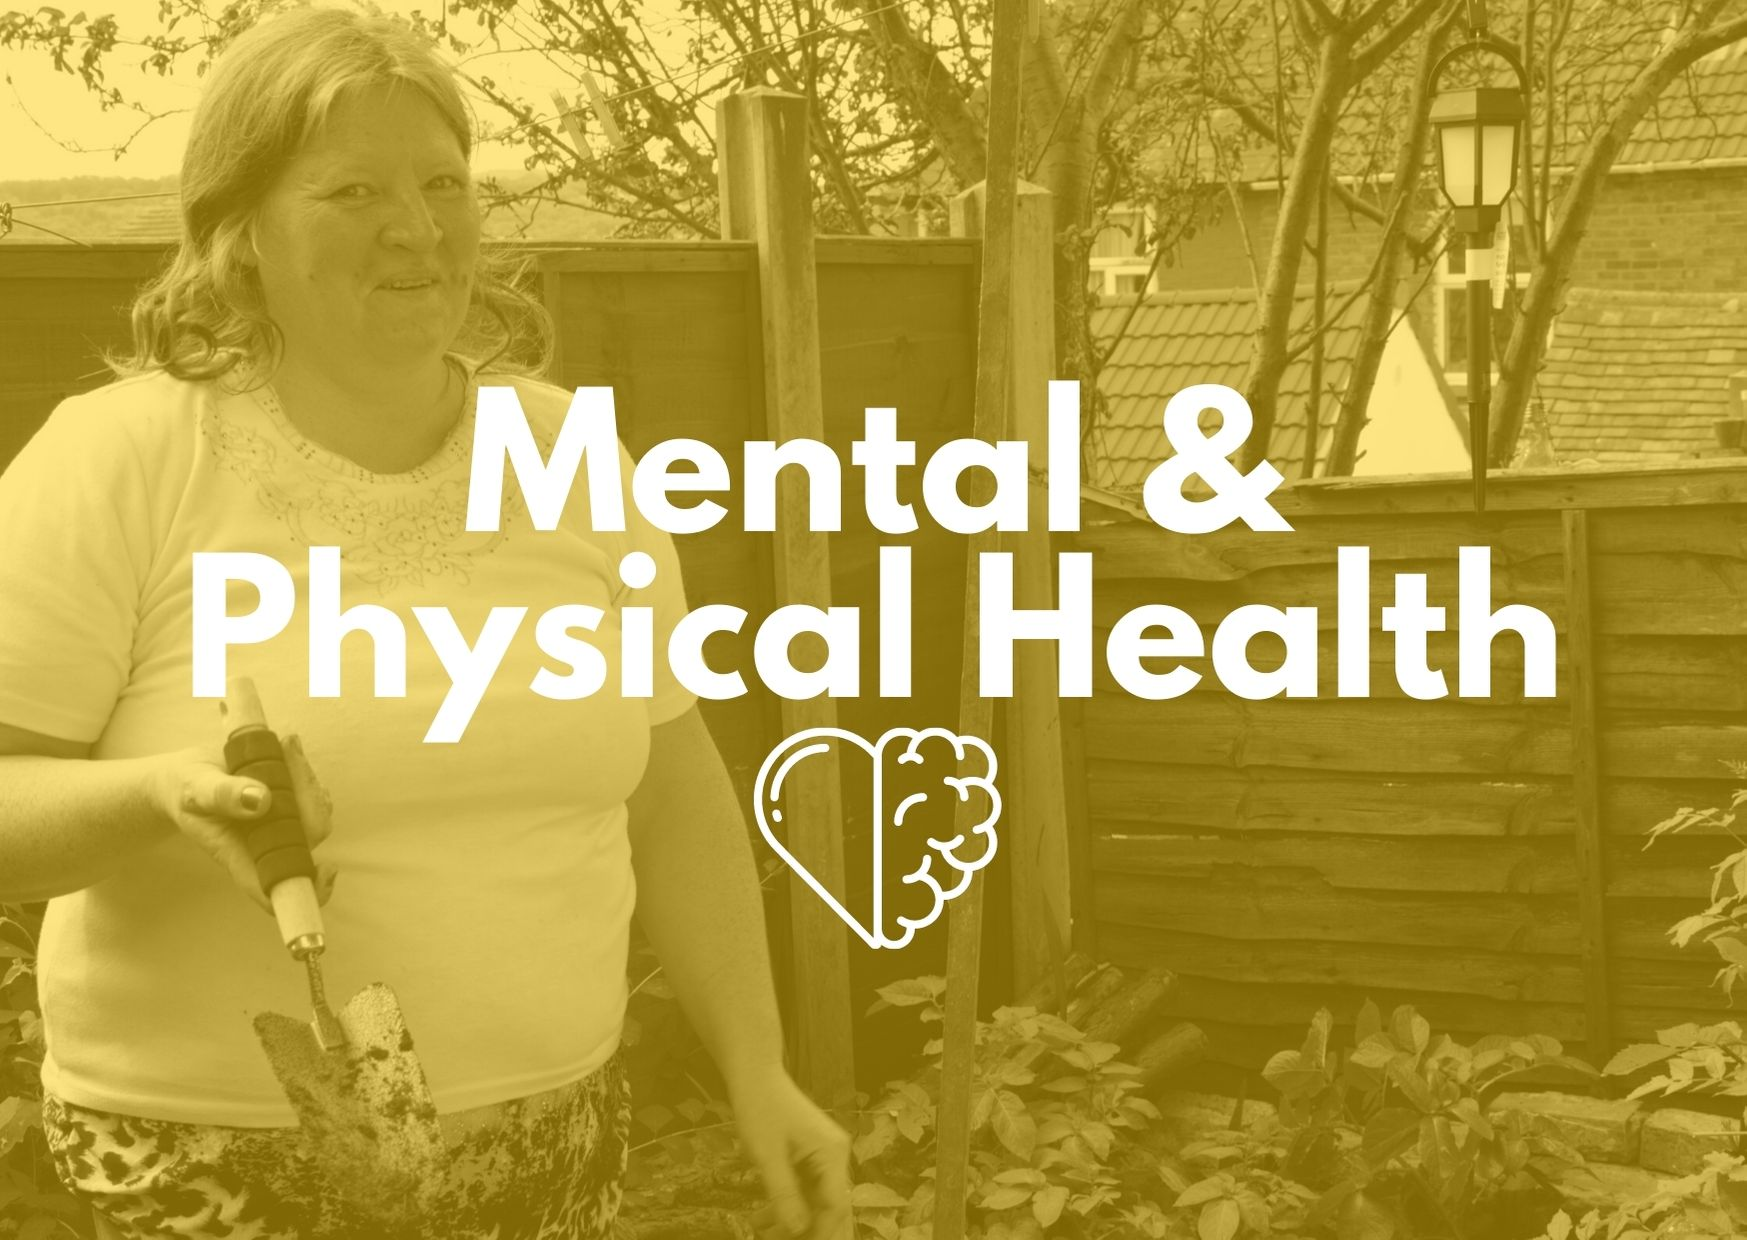 Helping Communities Thrive: Mental & Physical Health